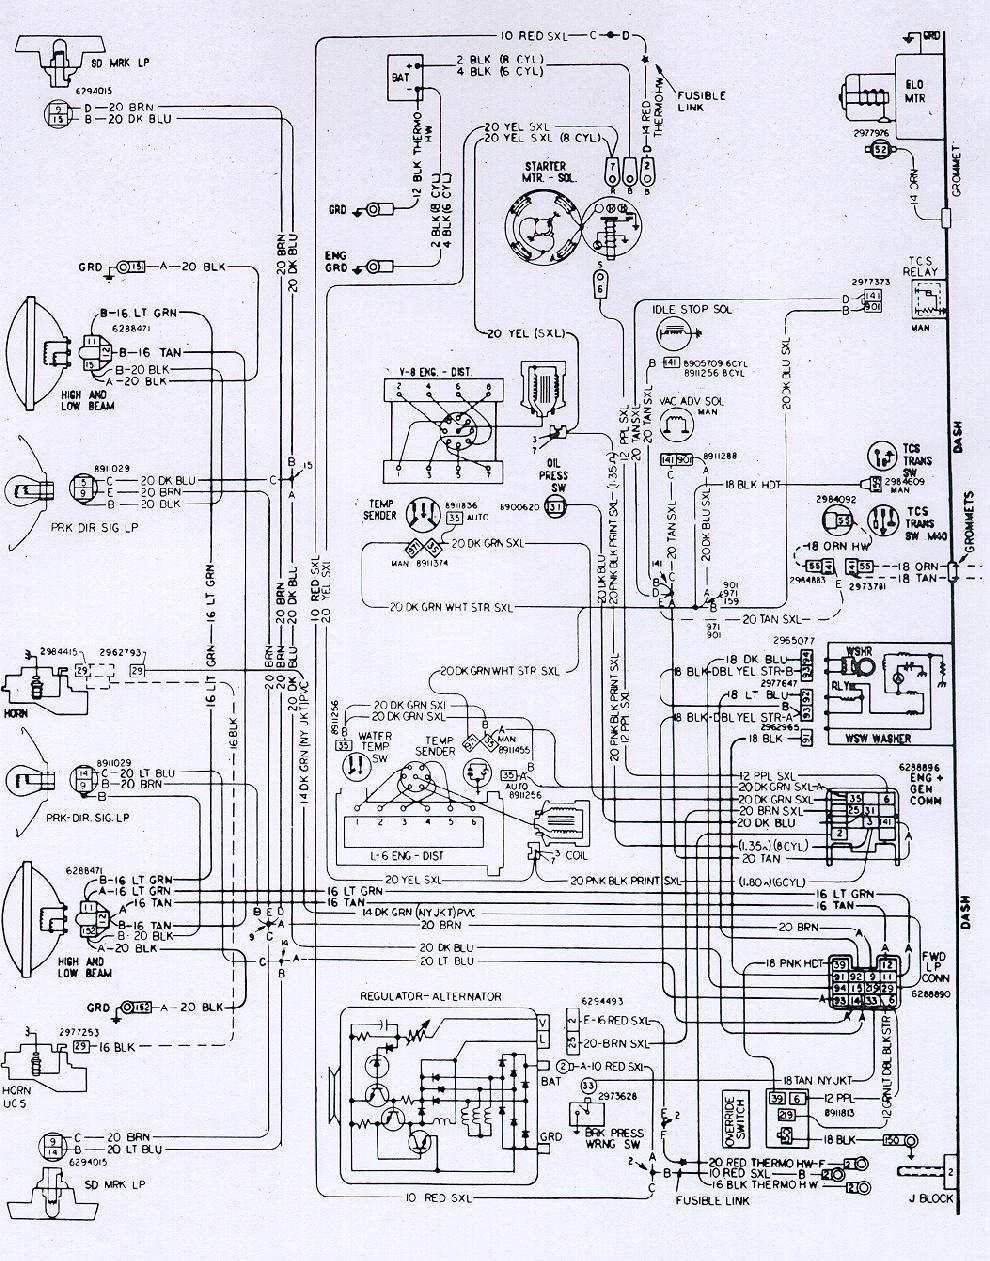 medium resolution of 68 caprice wire diagram simple wiring diagram rh 40 mara cujas de 1968 impala 1968 chevy caprice wiring diagram